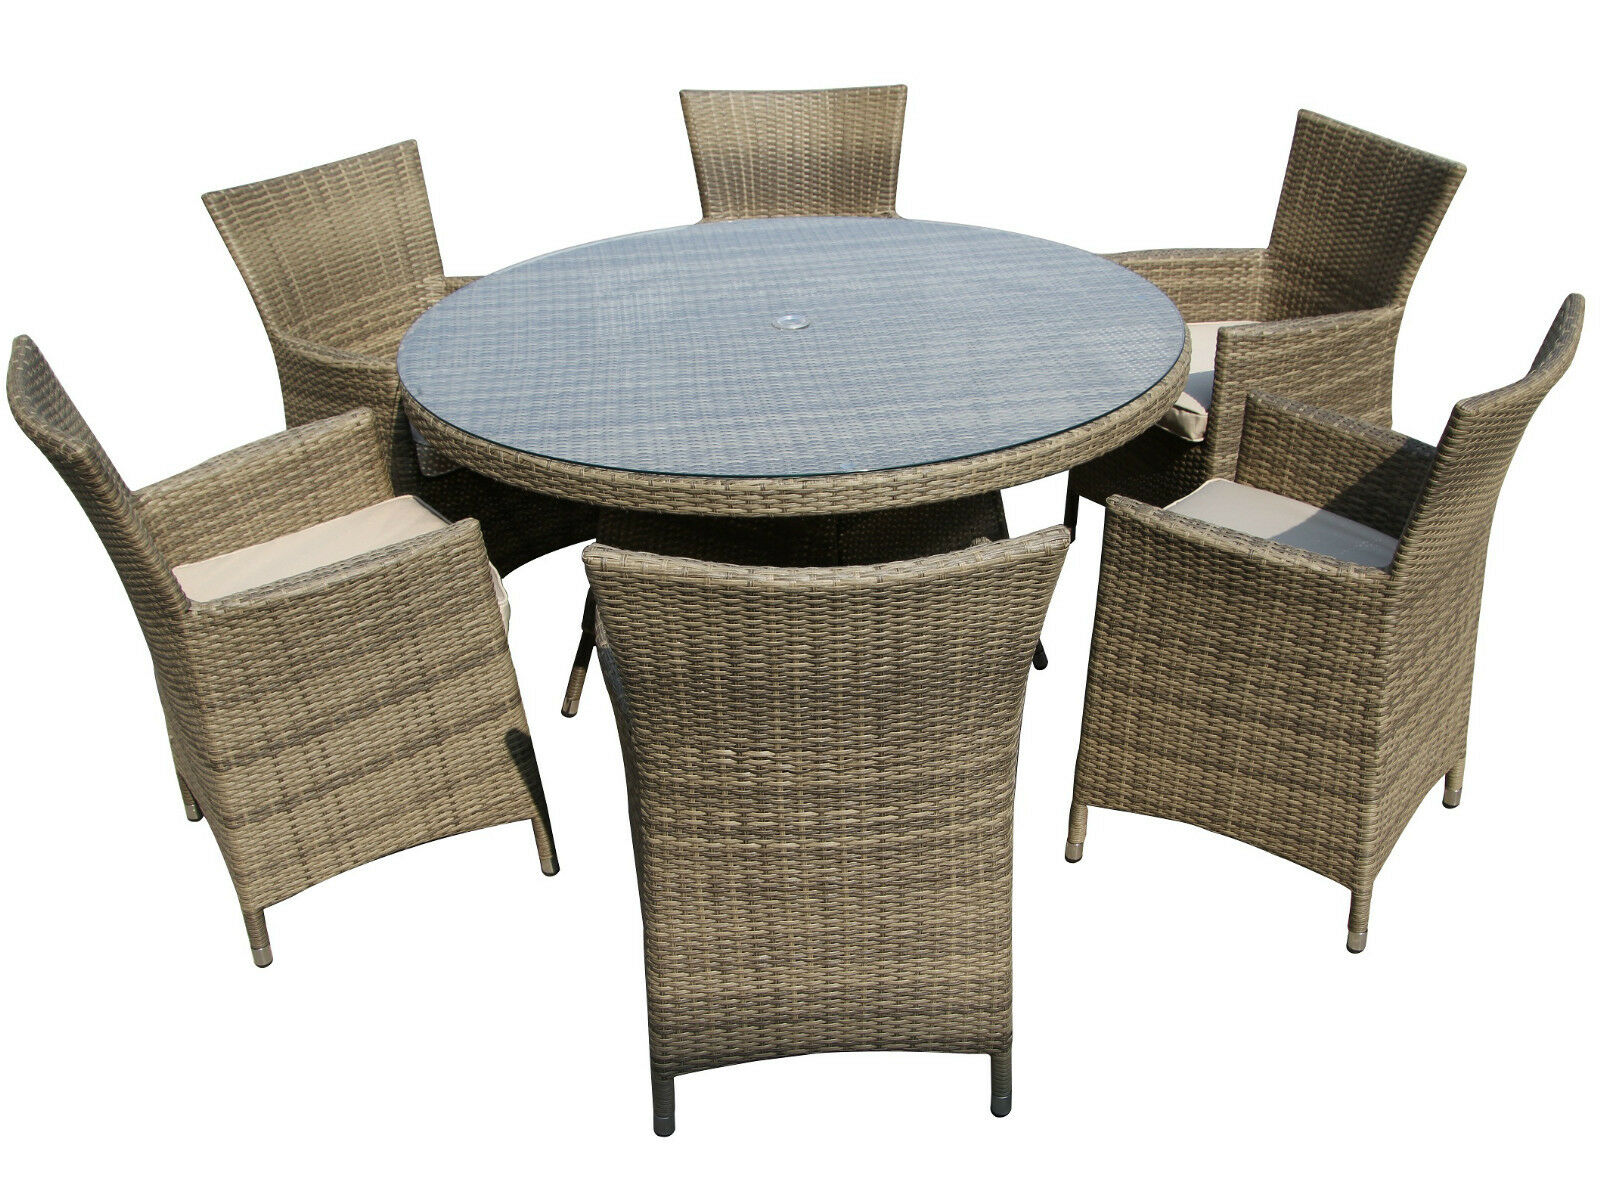 Patio Dining Rattan Outdoor Furniture Round Set Mix Brown Nature 1 Of 3free Shipping See More